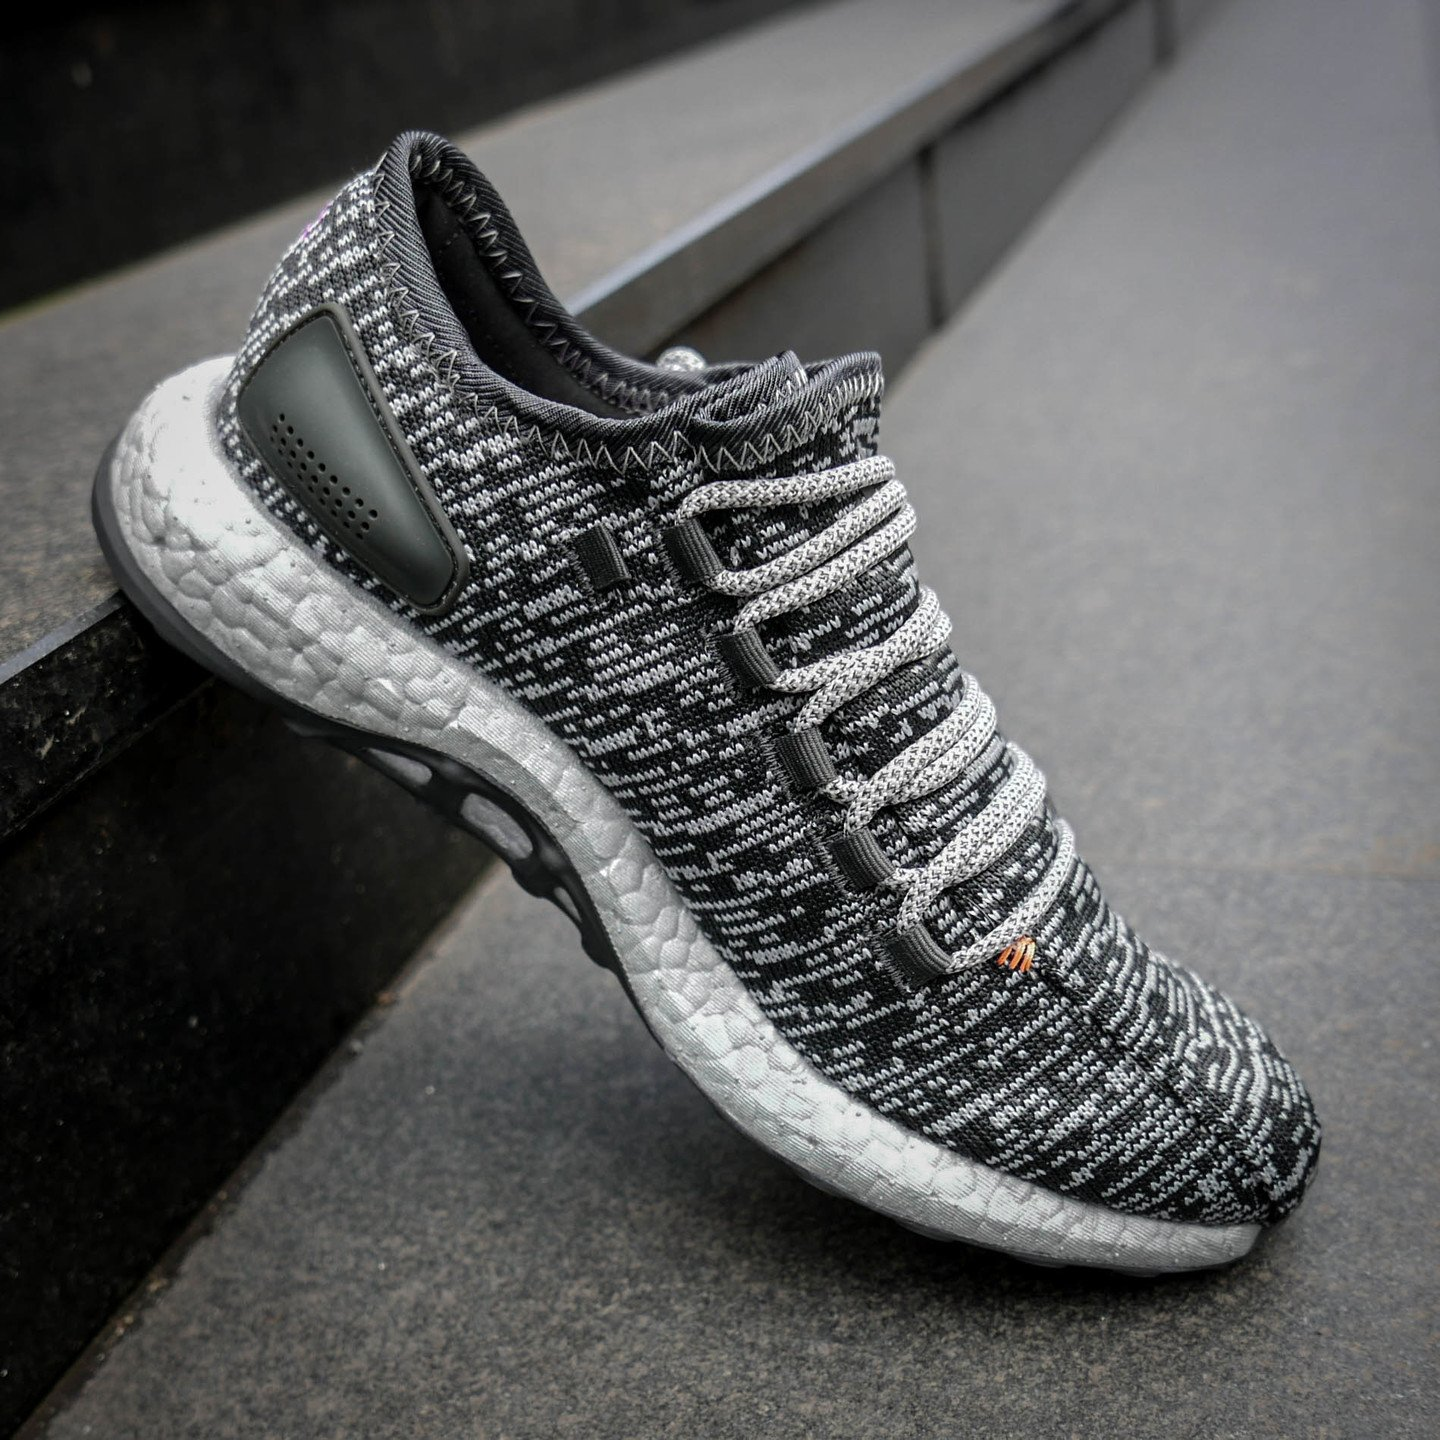 Adidas Pure Boost LTD 'Super Bowl' Solid Grey / Silver S80701